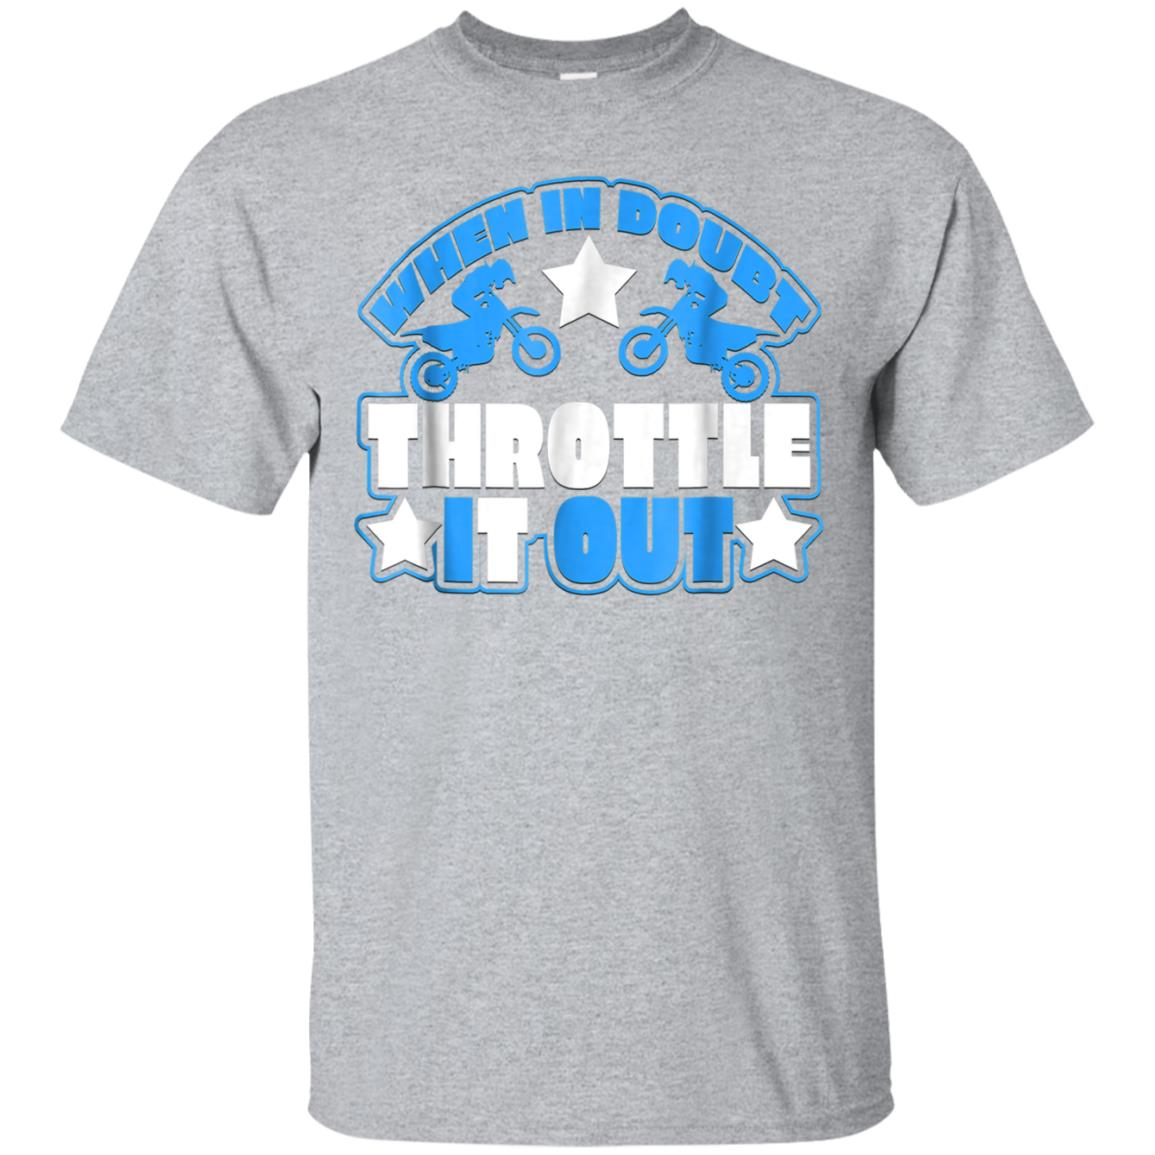 When In Doubt Throttle It Out Graphic Dirt Bike T-Shirt 99promocode